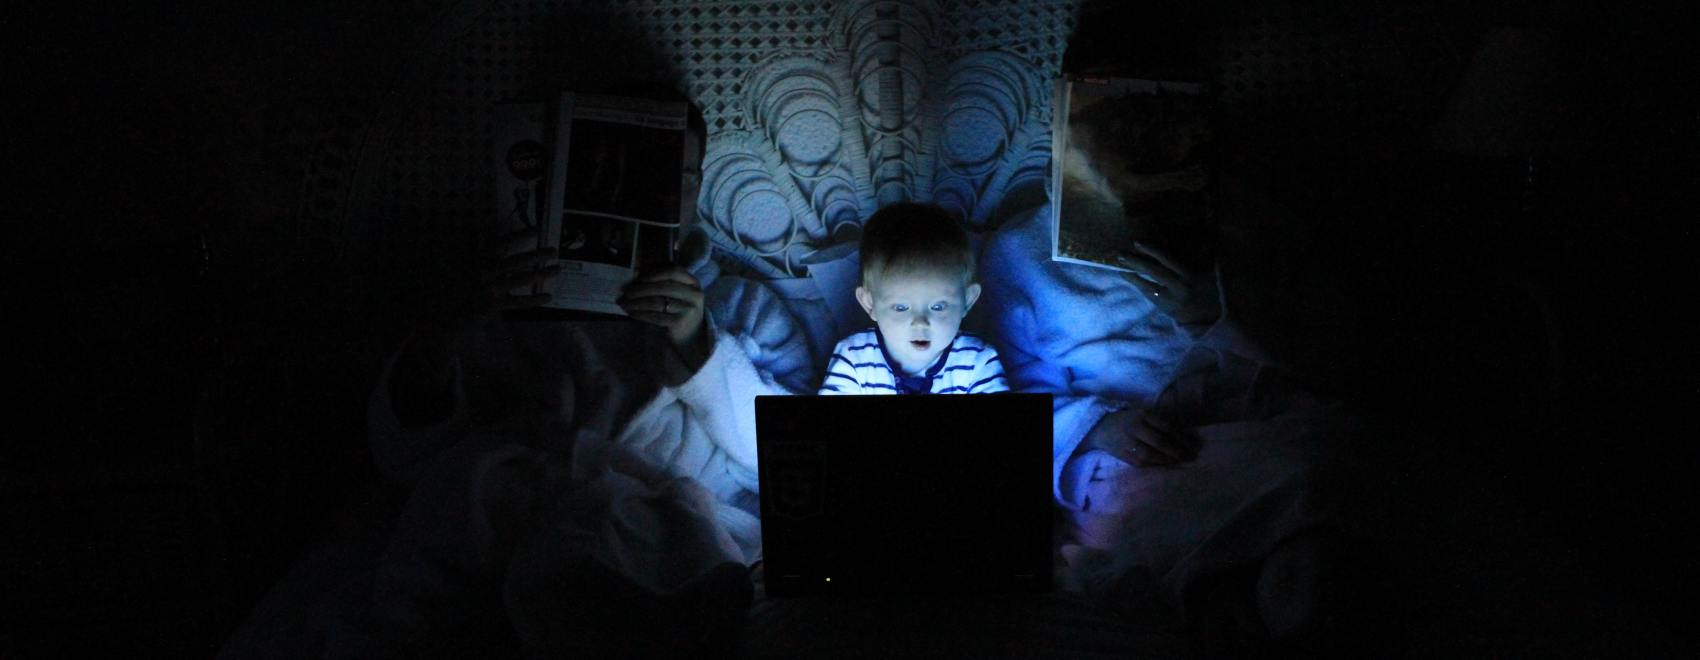 Child playing on laptop. Photo by Ludovic Toinel on Unsplash.